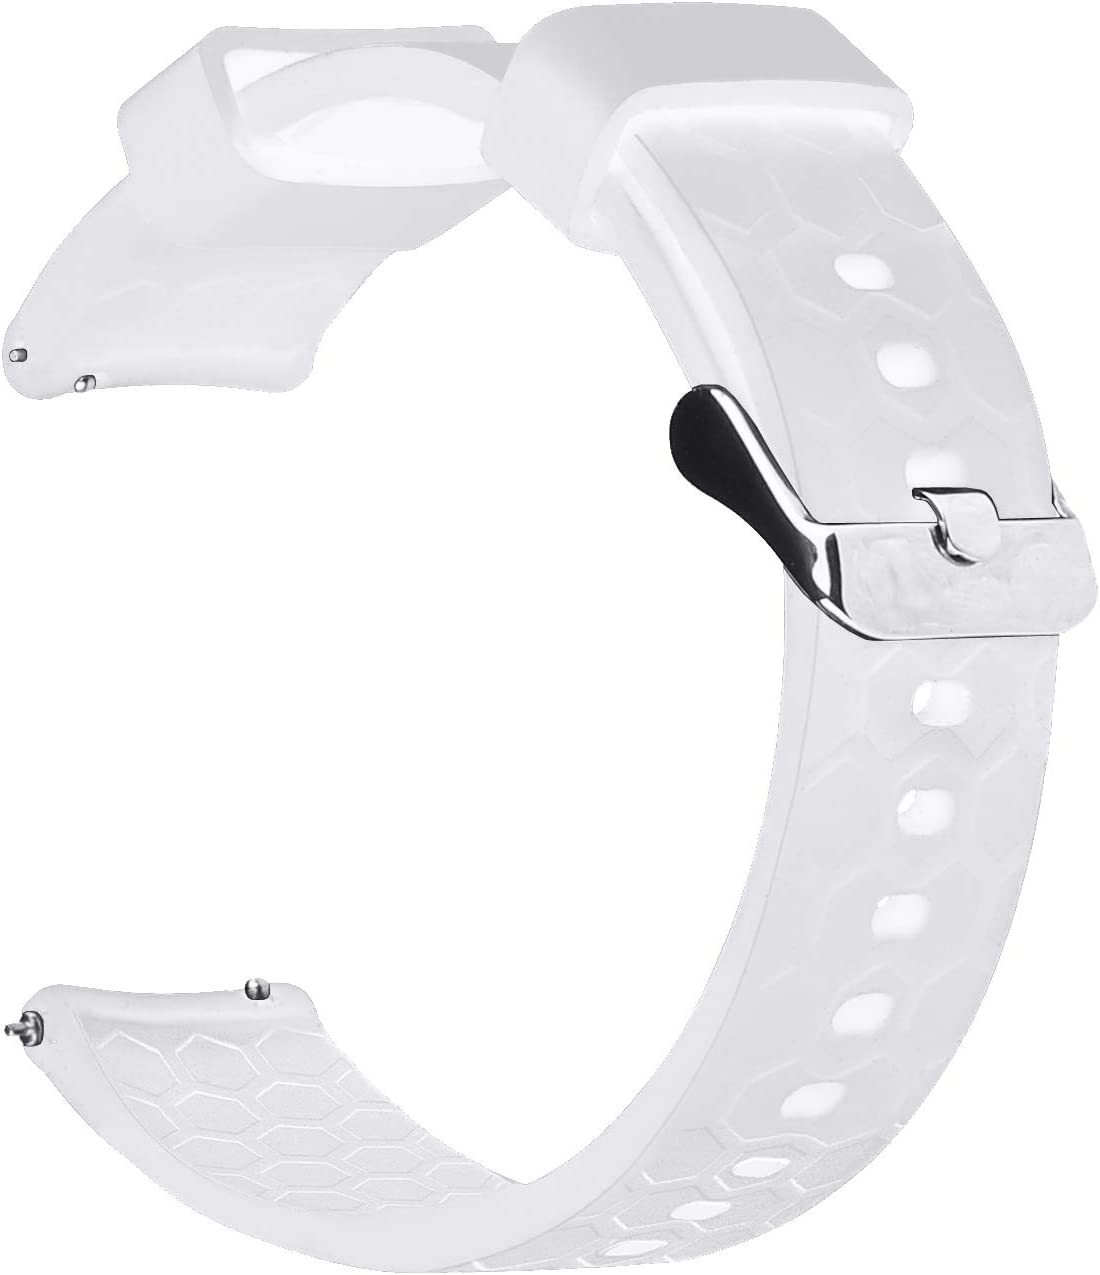 Watch Band/Strap for Pebble Time Smartwatch Band Replacement Accessories with Metal Clasps Watch Strap/Wristband Silicone (White)